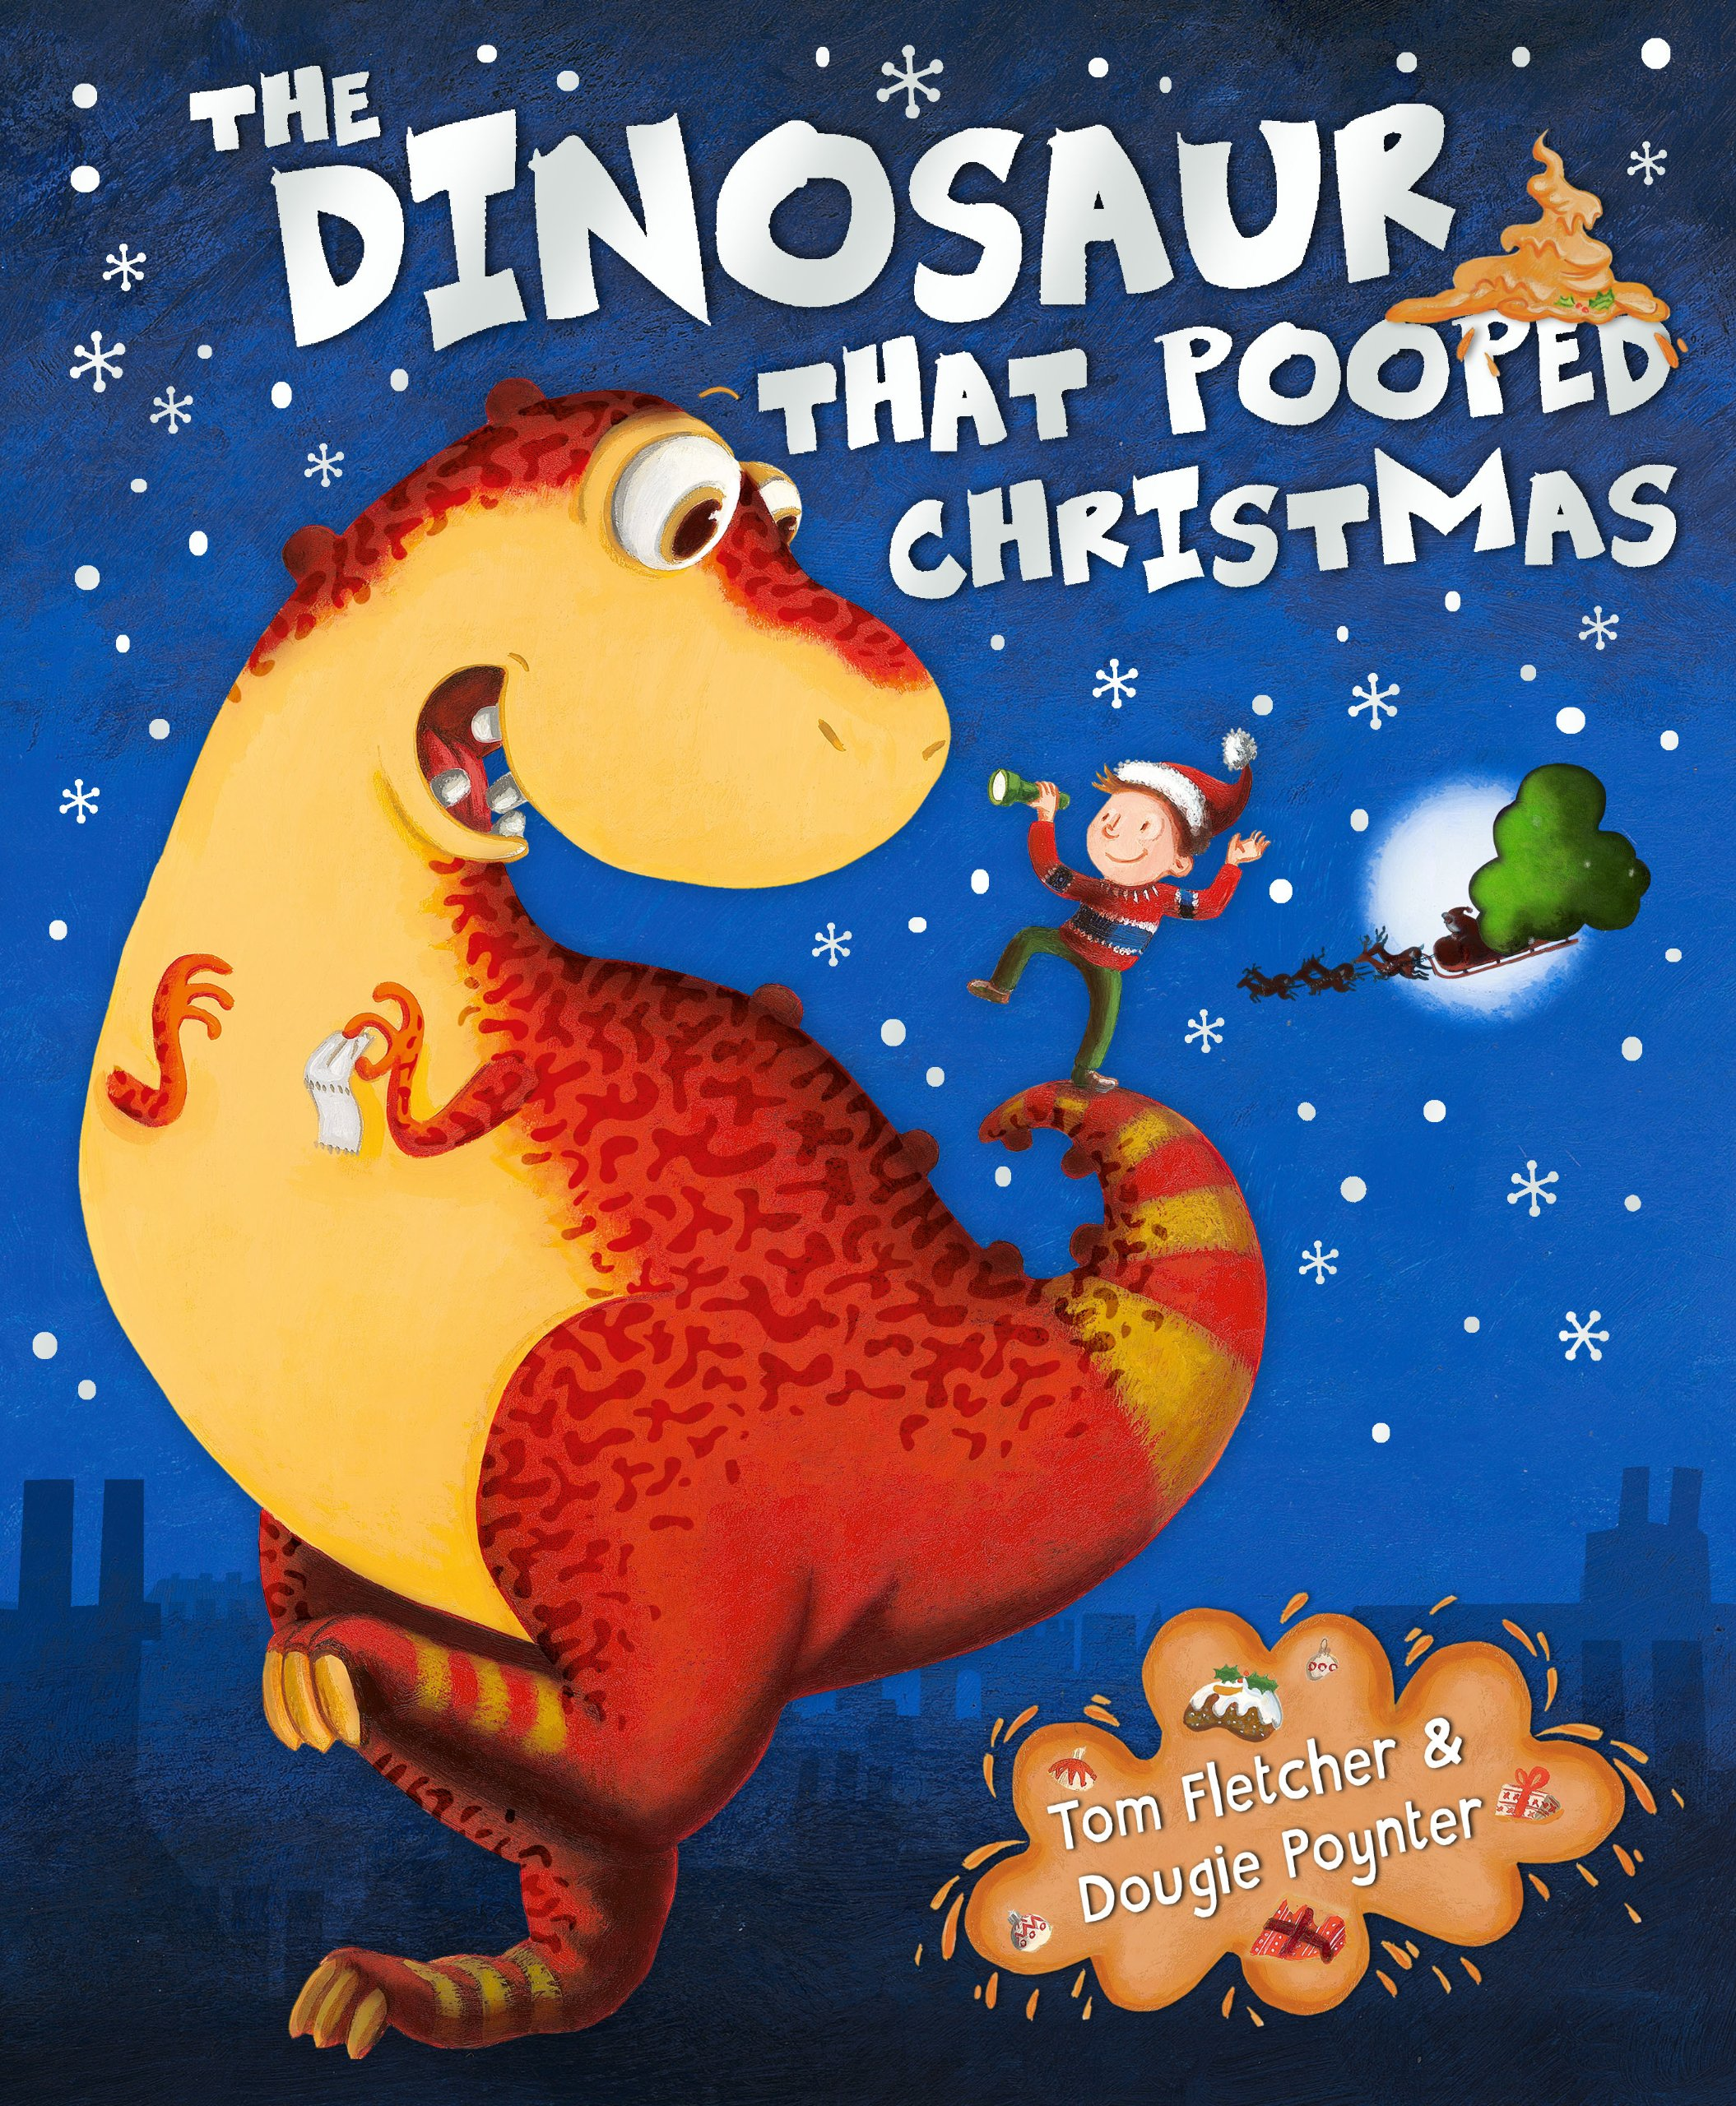 The dinosaur that pooped christmas tom fletcher dougie poynter the dinosaur that pooped christmas tom fletcher dougie poynter garry parsons 9781849417792 amazon books fandeluxe Image collections